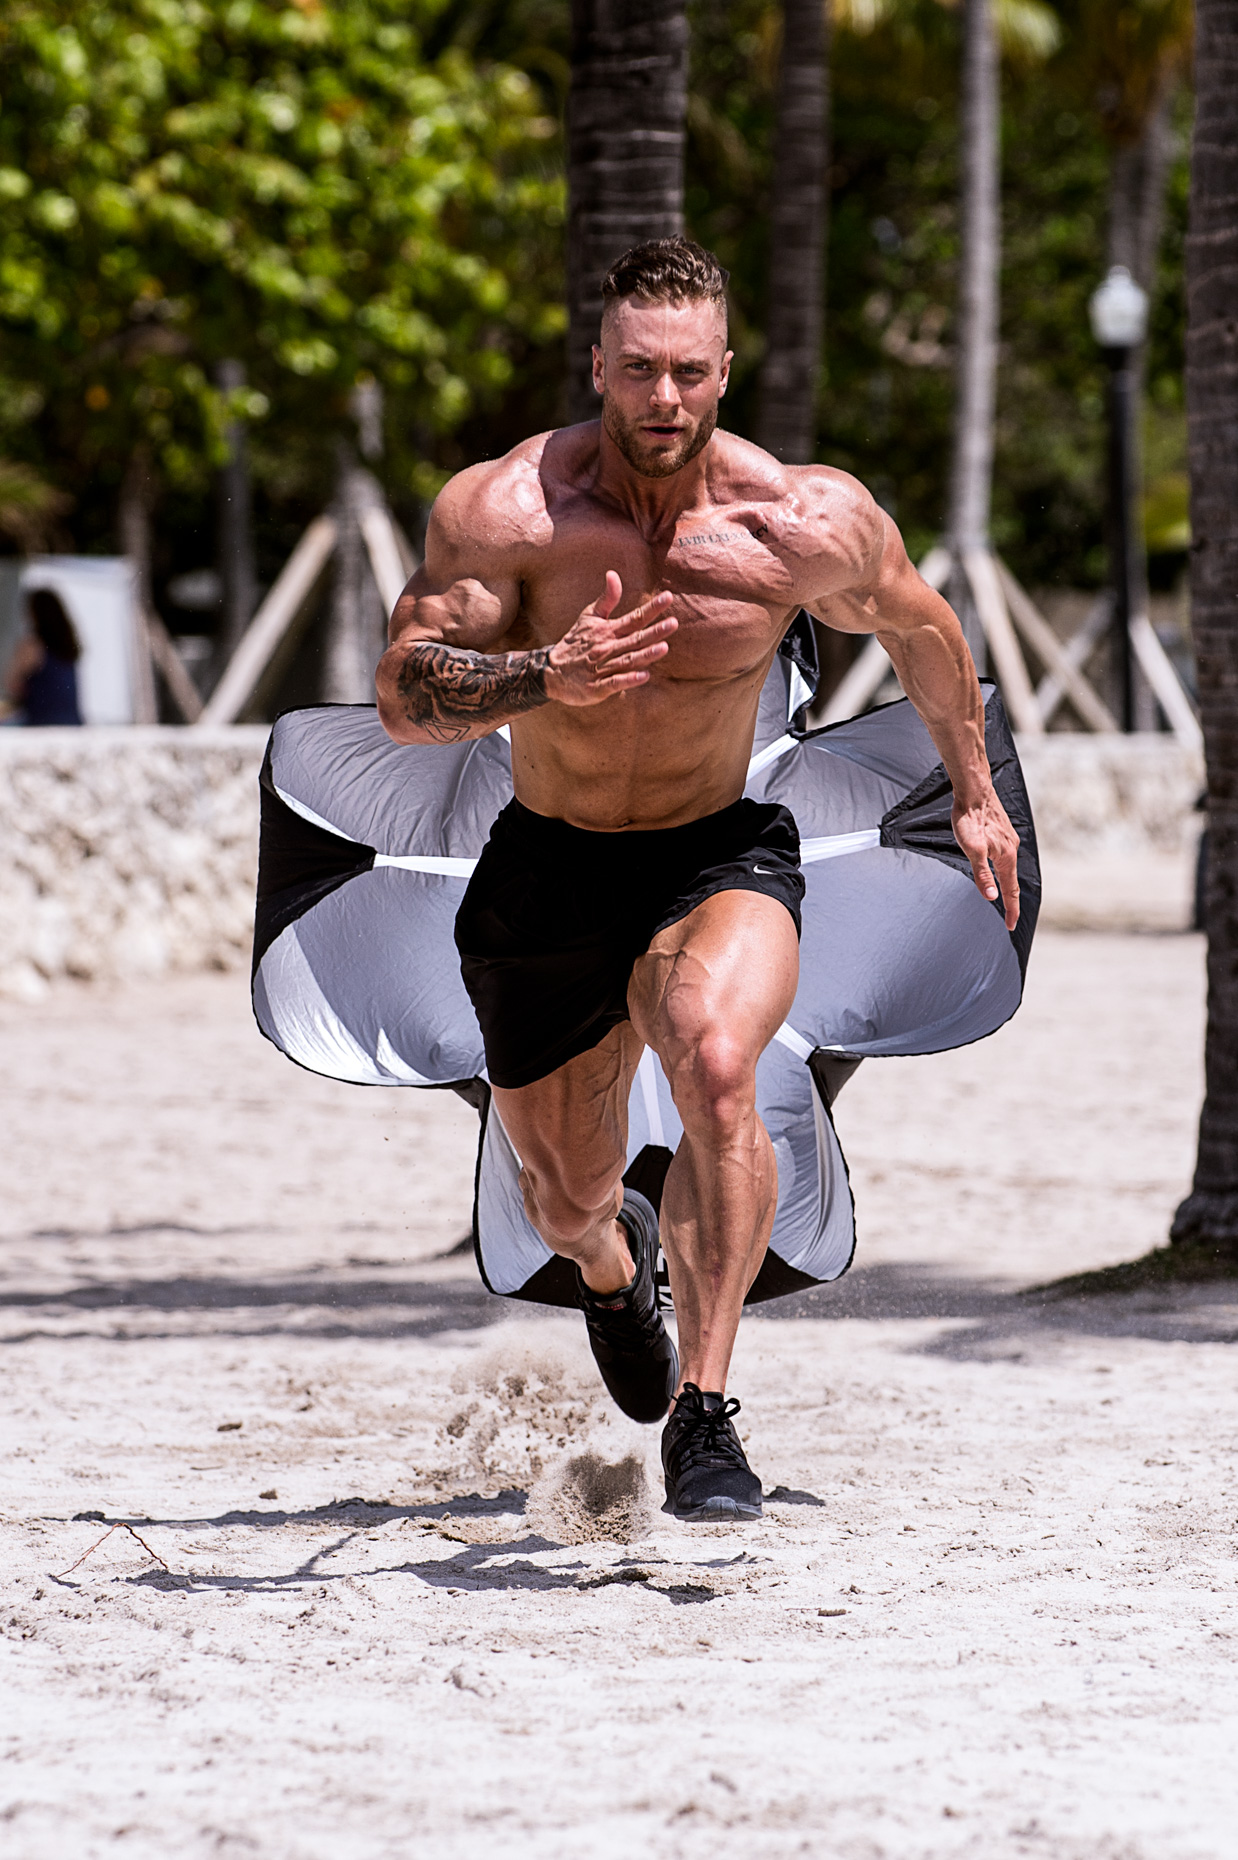 MHPNutrition-Chrisbumstead-BodybuildingchampionBrandAmbassador-Sportssupplementcampaign-BattleRopes-Parachutesprint